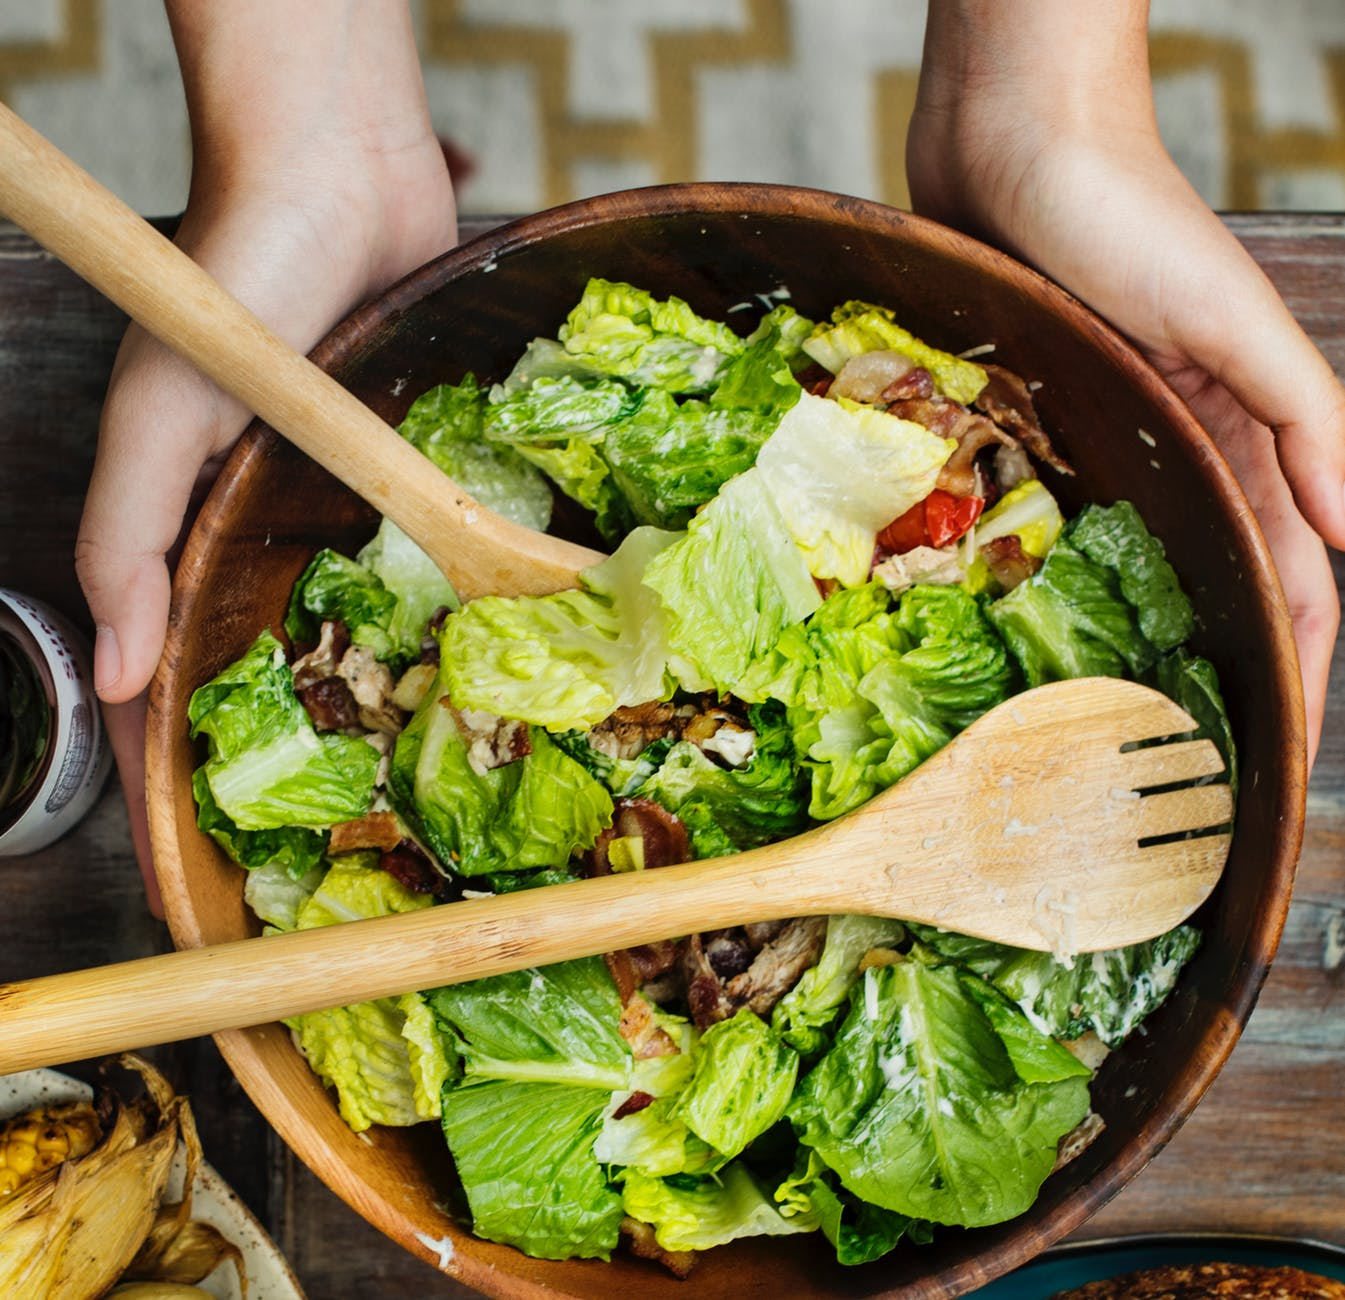 person holding brown wooden bowl with vegetable salad inside